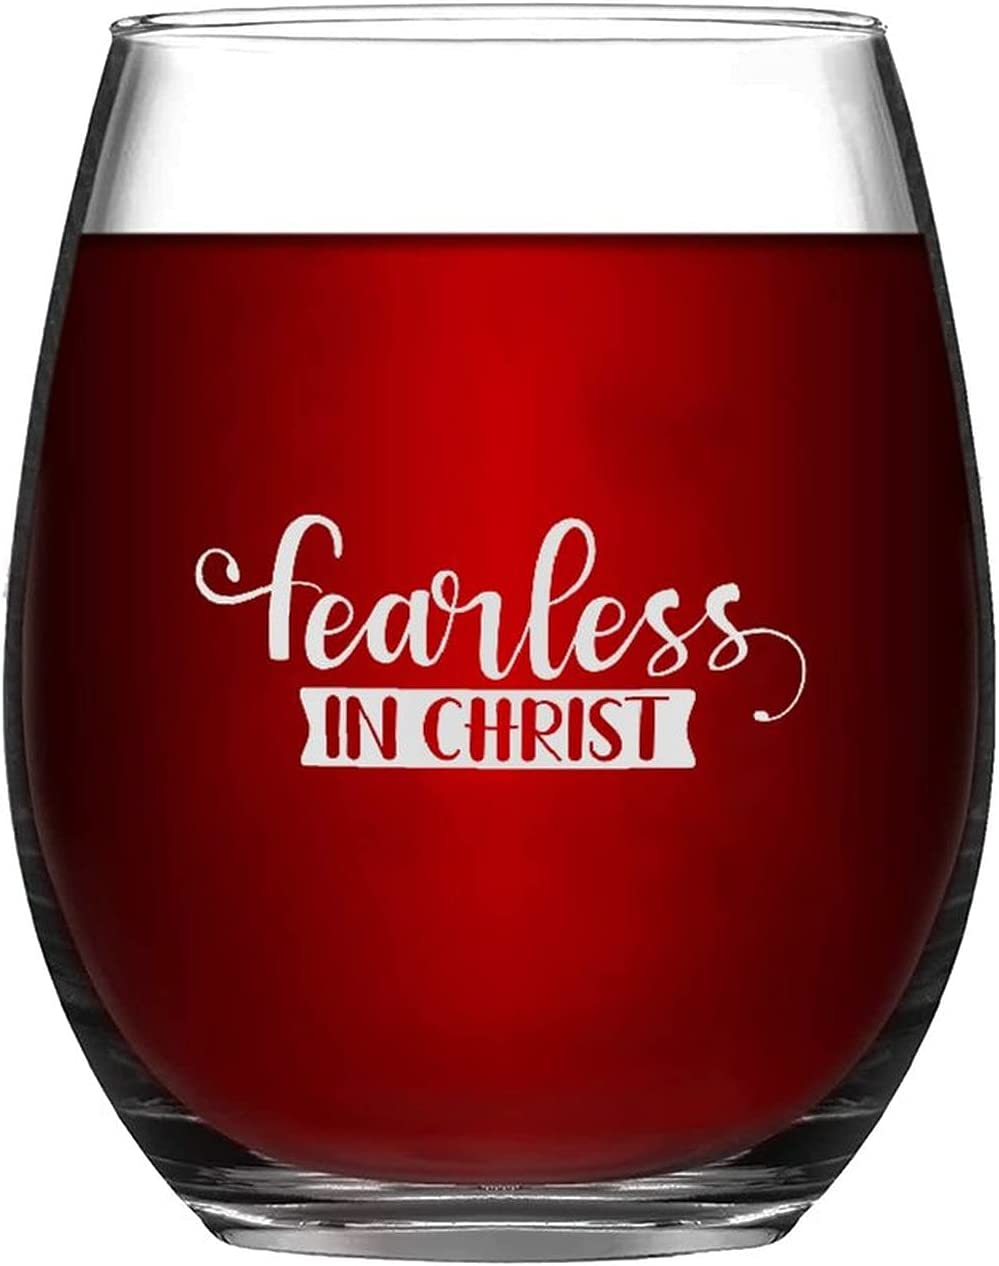 Stemless Wine Glasses Fearless In Christ Glass Go Engraved Selling and selling Laser High quality new